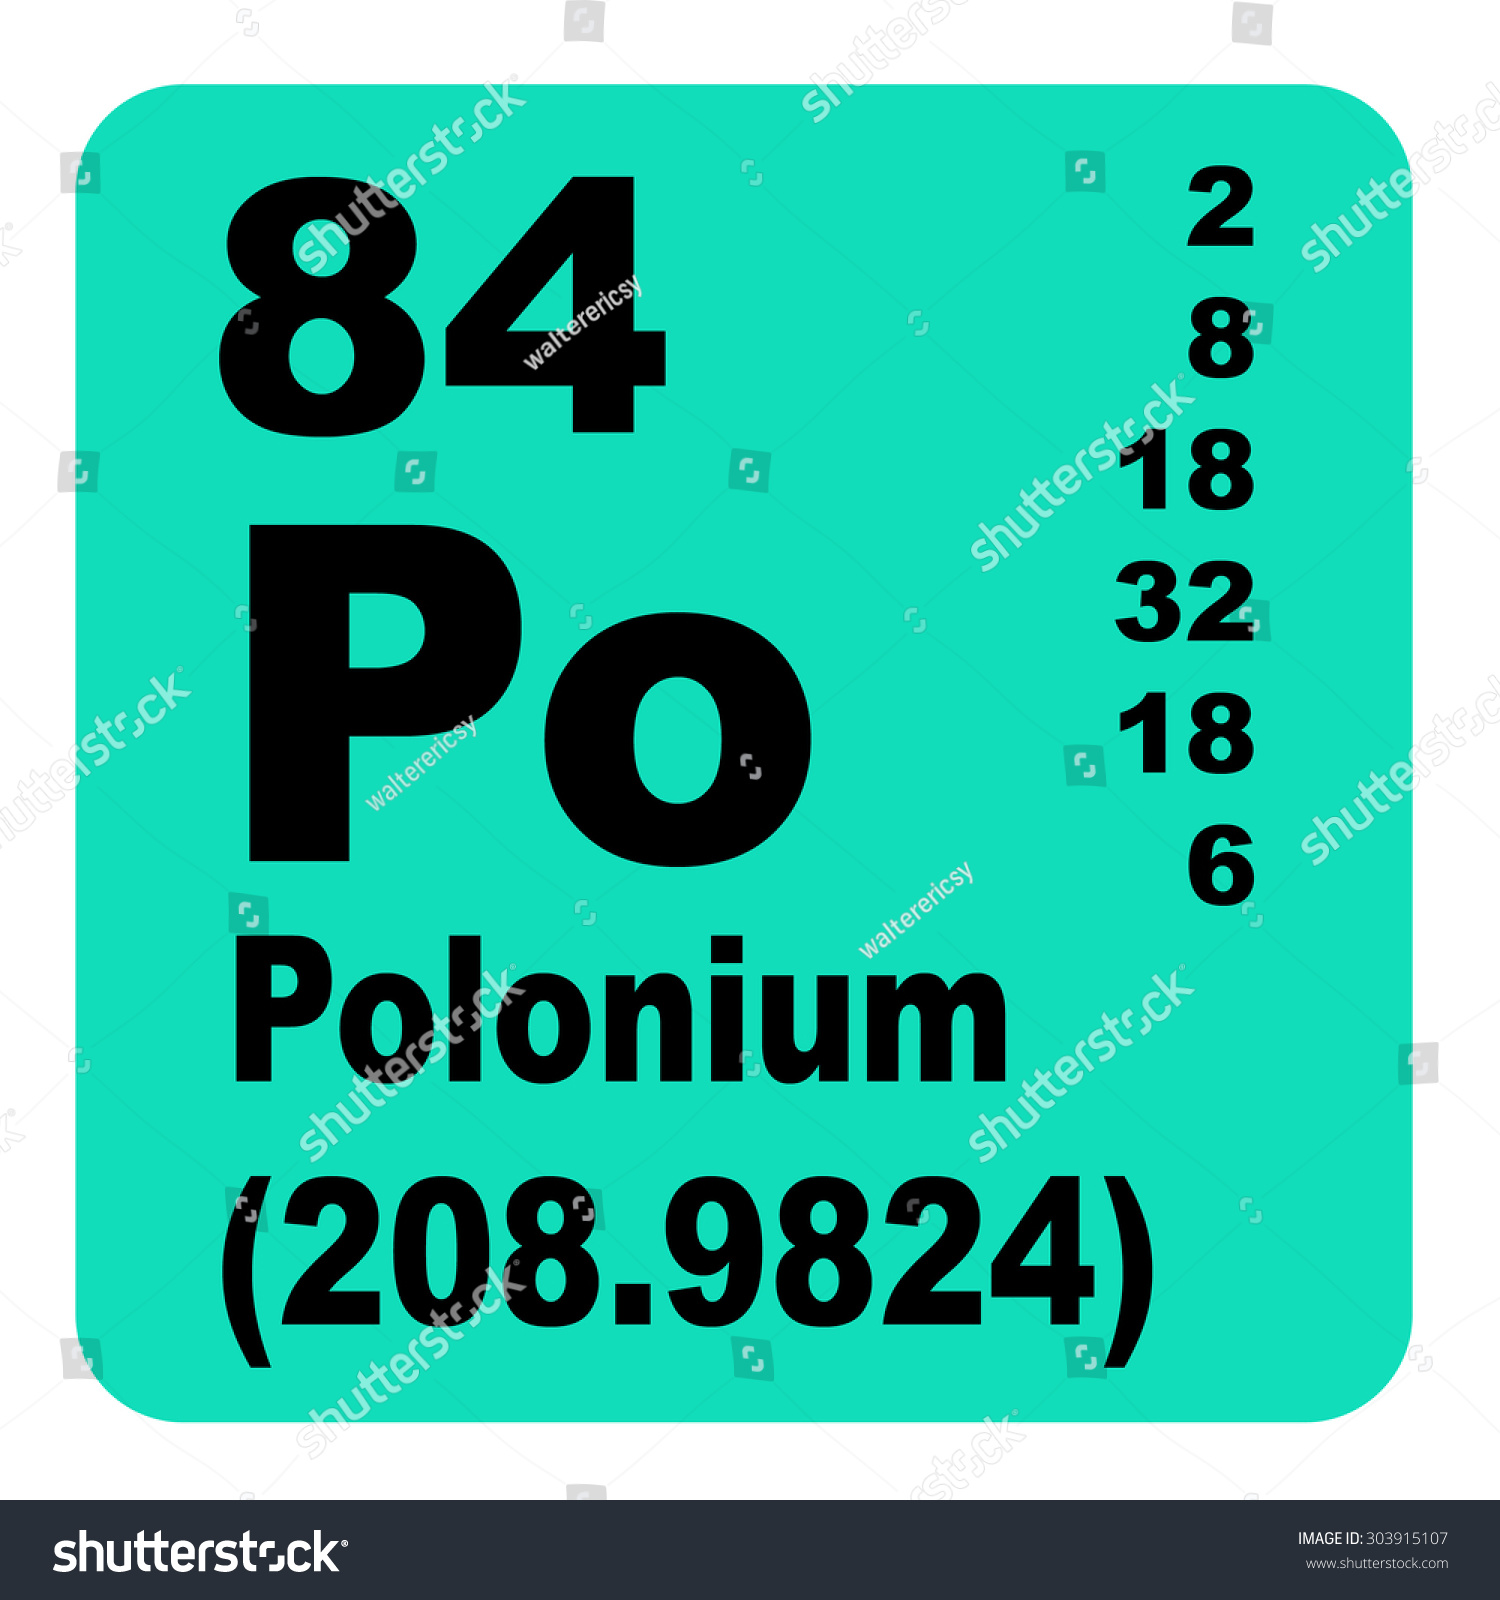 Element 41 periodic table image collections periodic table images how are elements arranged in the periodic table yahoo answers polonium on the periodic table aviongoldcorp gamestrikefo Image collections